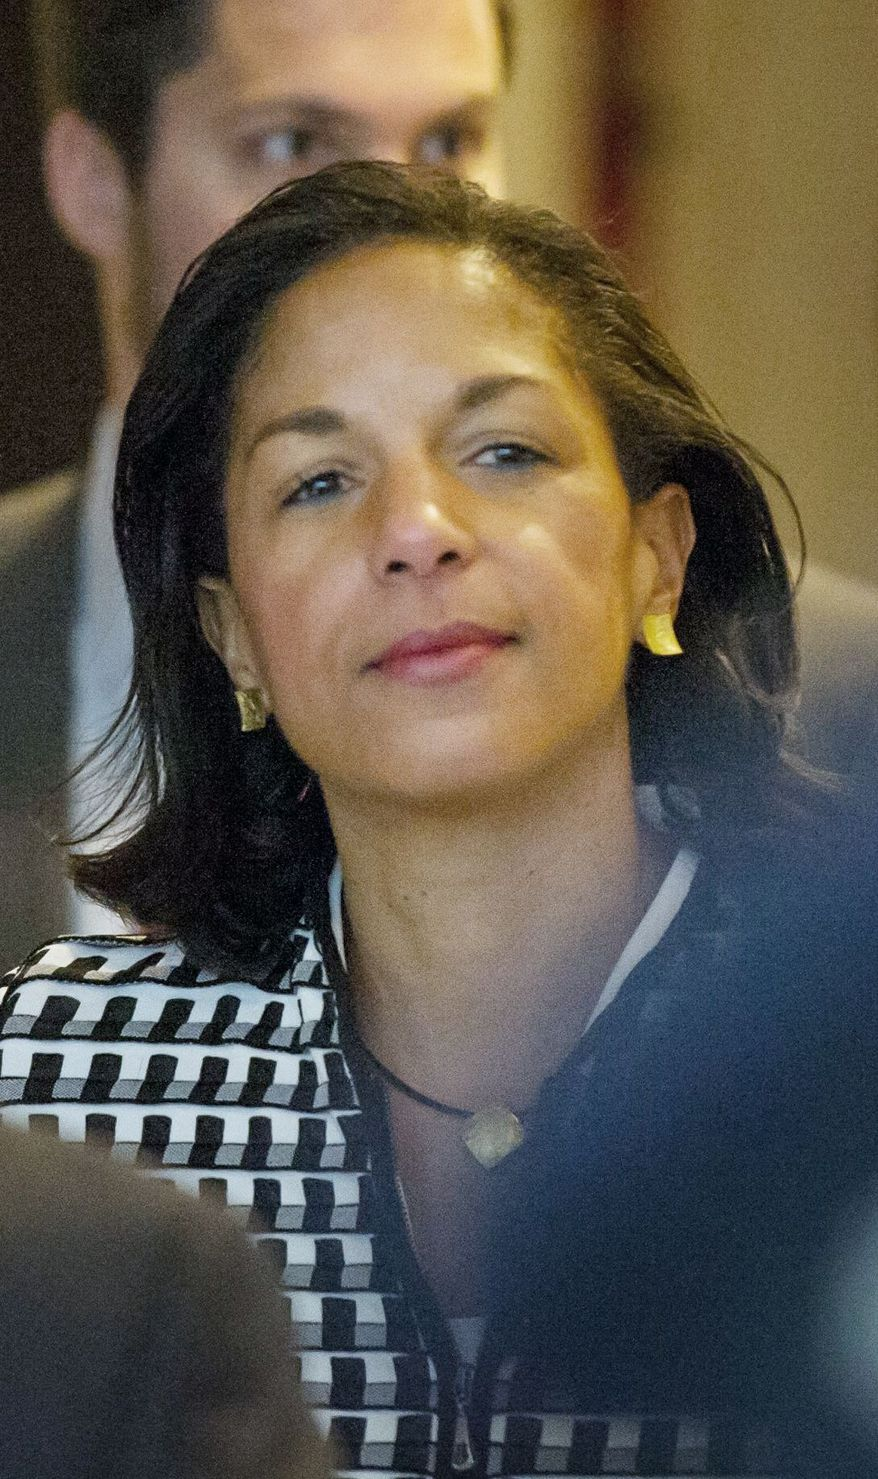 Susan E. Rice, U.N. ambassador, has been meeting with Republicans after the uproar about the handling of the Benghazi attack. (Andrew Harnik/The Washington Times)